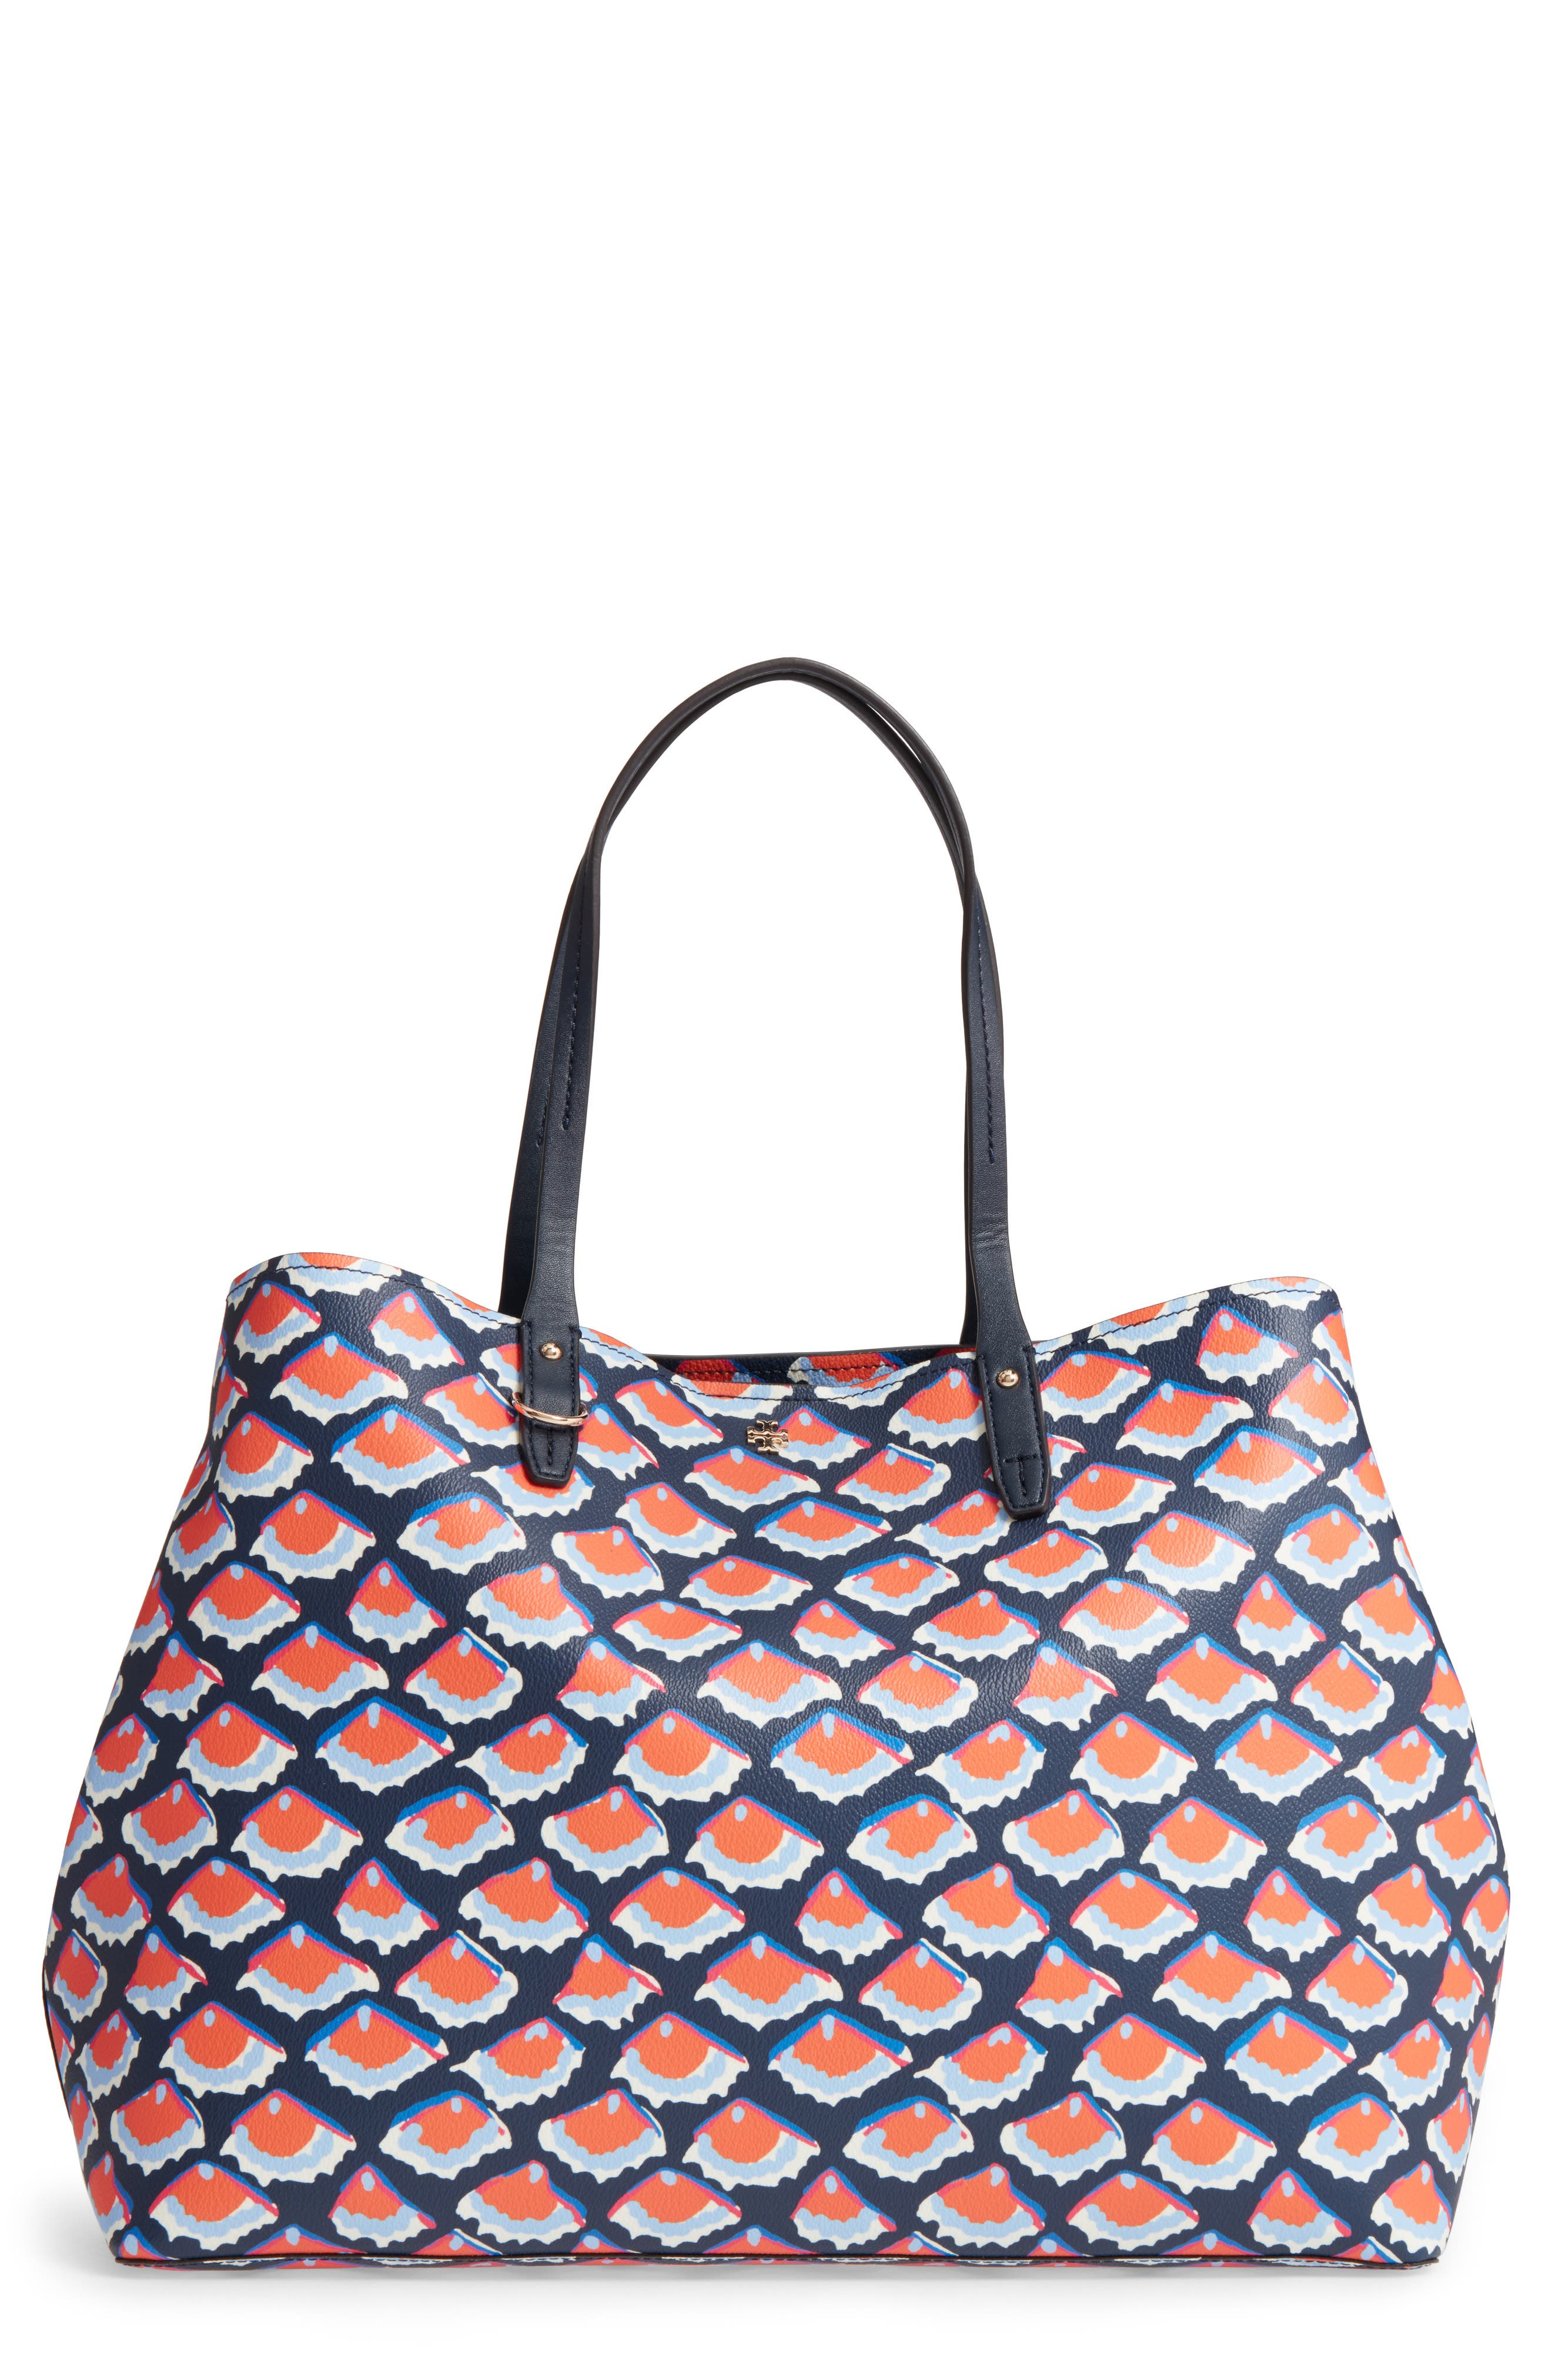 Alternate Image 1 Selected - Tory Burch Kerrington Coated Canvas Tote